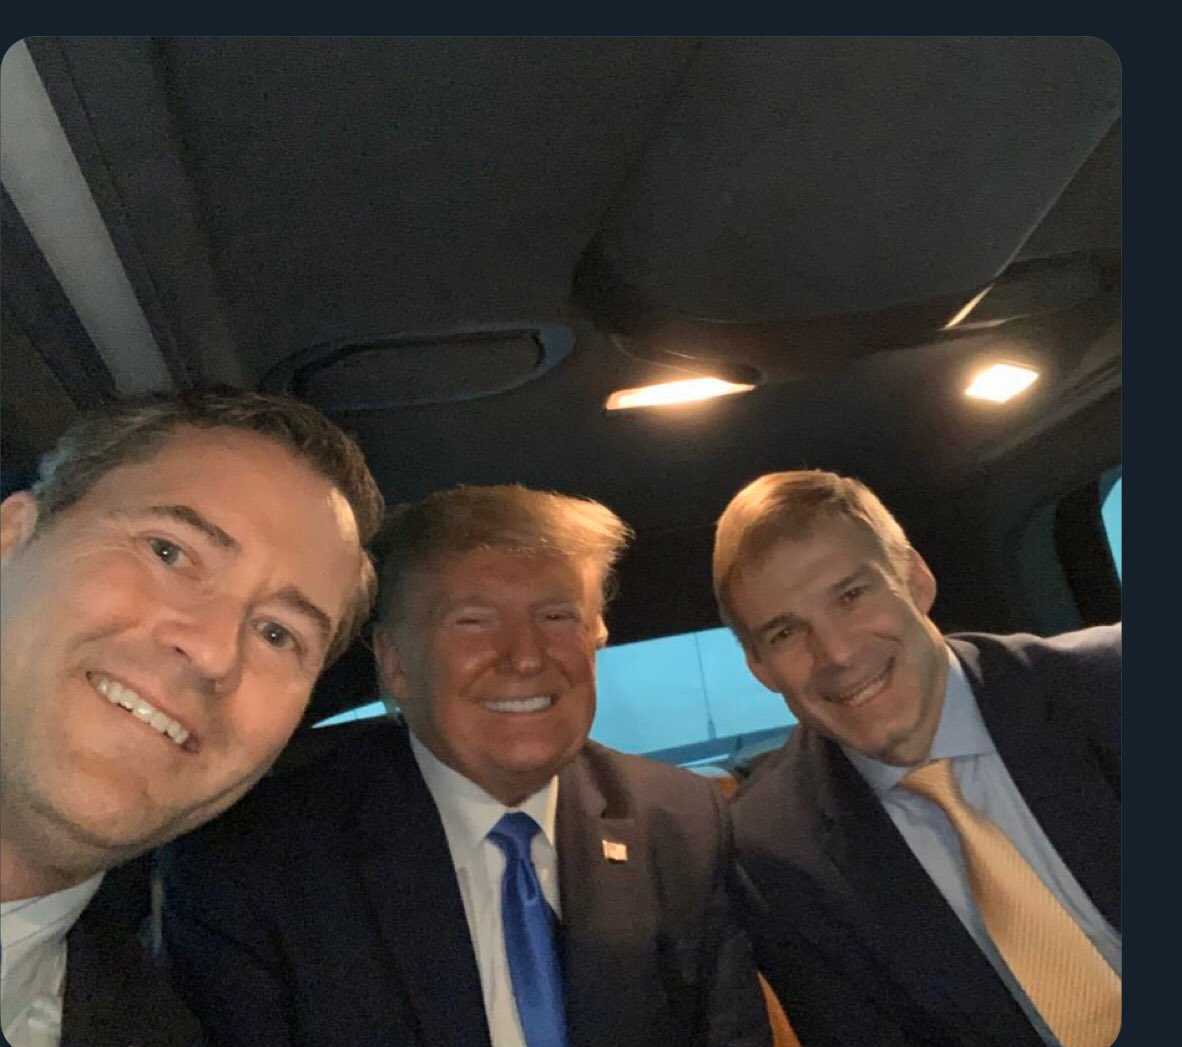 President Donald Trump is in good company! Great smiles! These men do not look worried! We can feel confident of Four more years! 🇺🇸Voting🇺🇸 Straight Republican Ticket 20/20! @realDonaldTrump @RepMichaelWaltz @Jim_Jordan